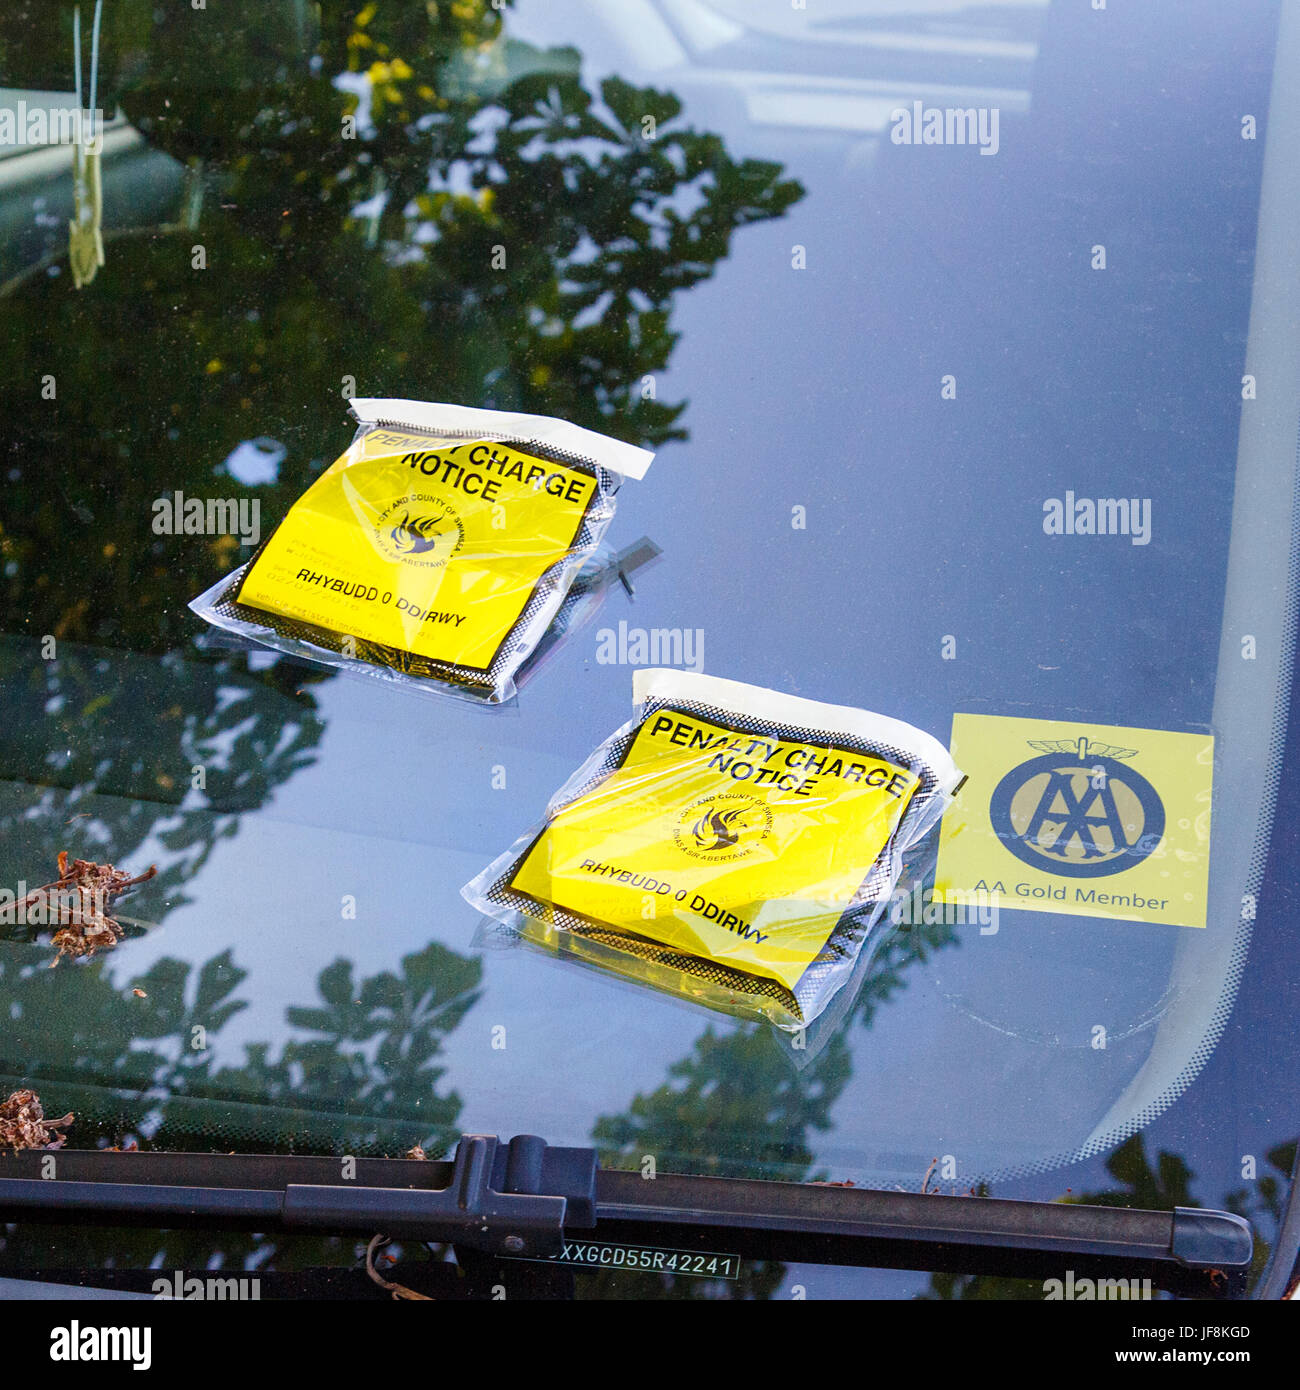 Penalty Charge Notice - Parking Ticket - Stock Image